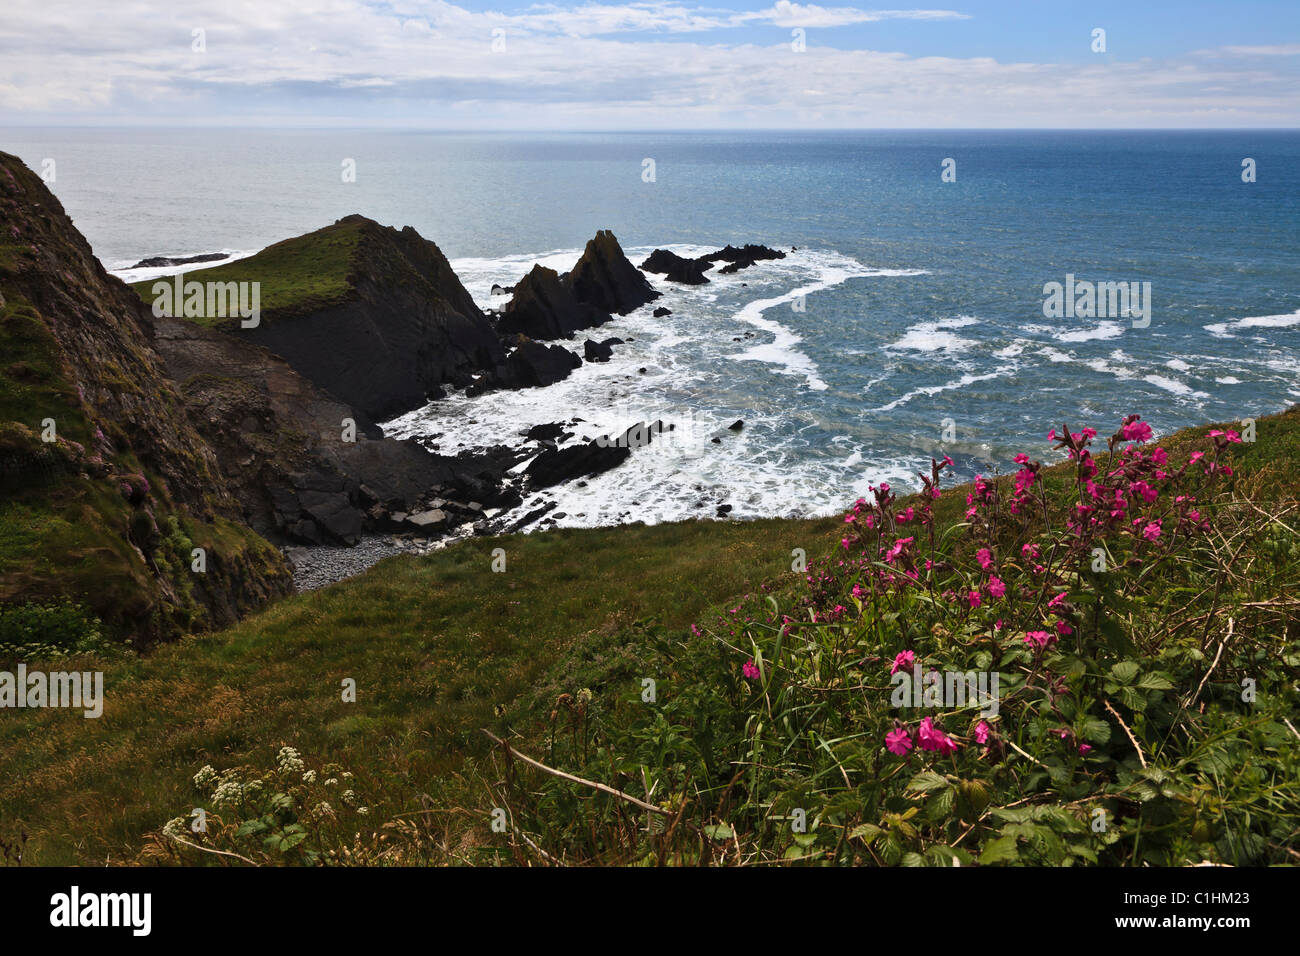 View from the South West Coast Path of the wild, rocky coast at Hartland Quay, Devon, England Stock Photo